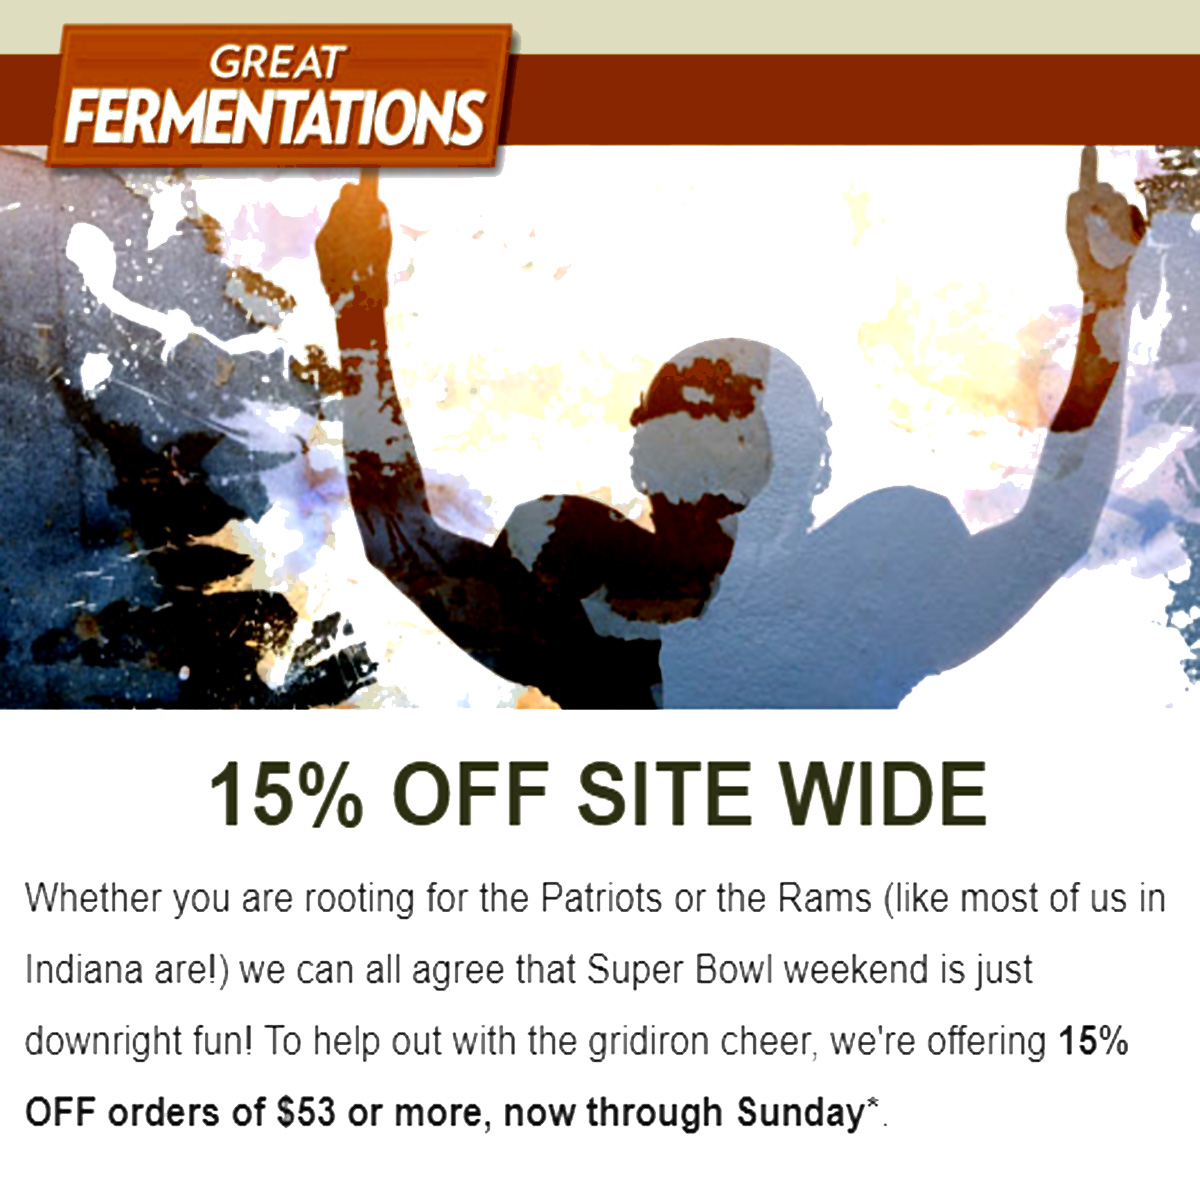 Great Fermentation Promo Codes and Coupons